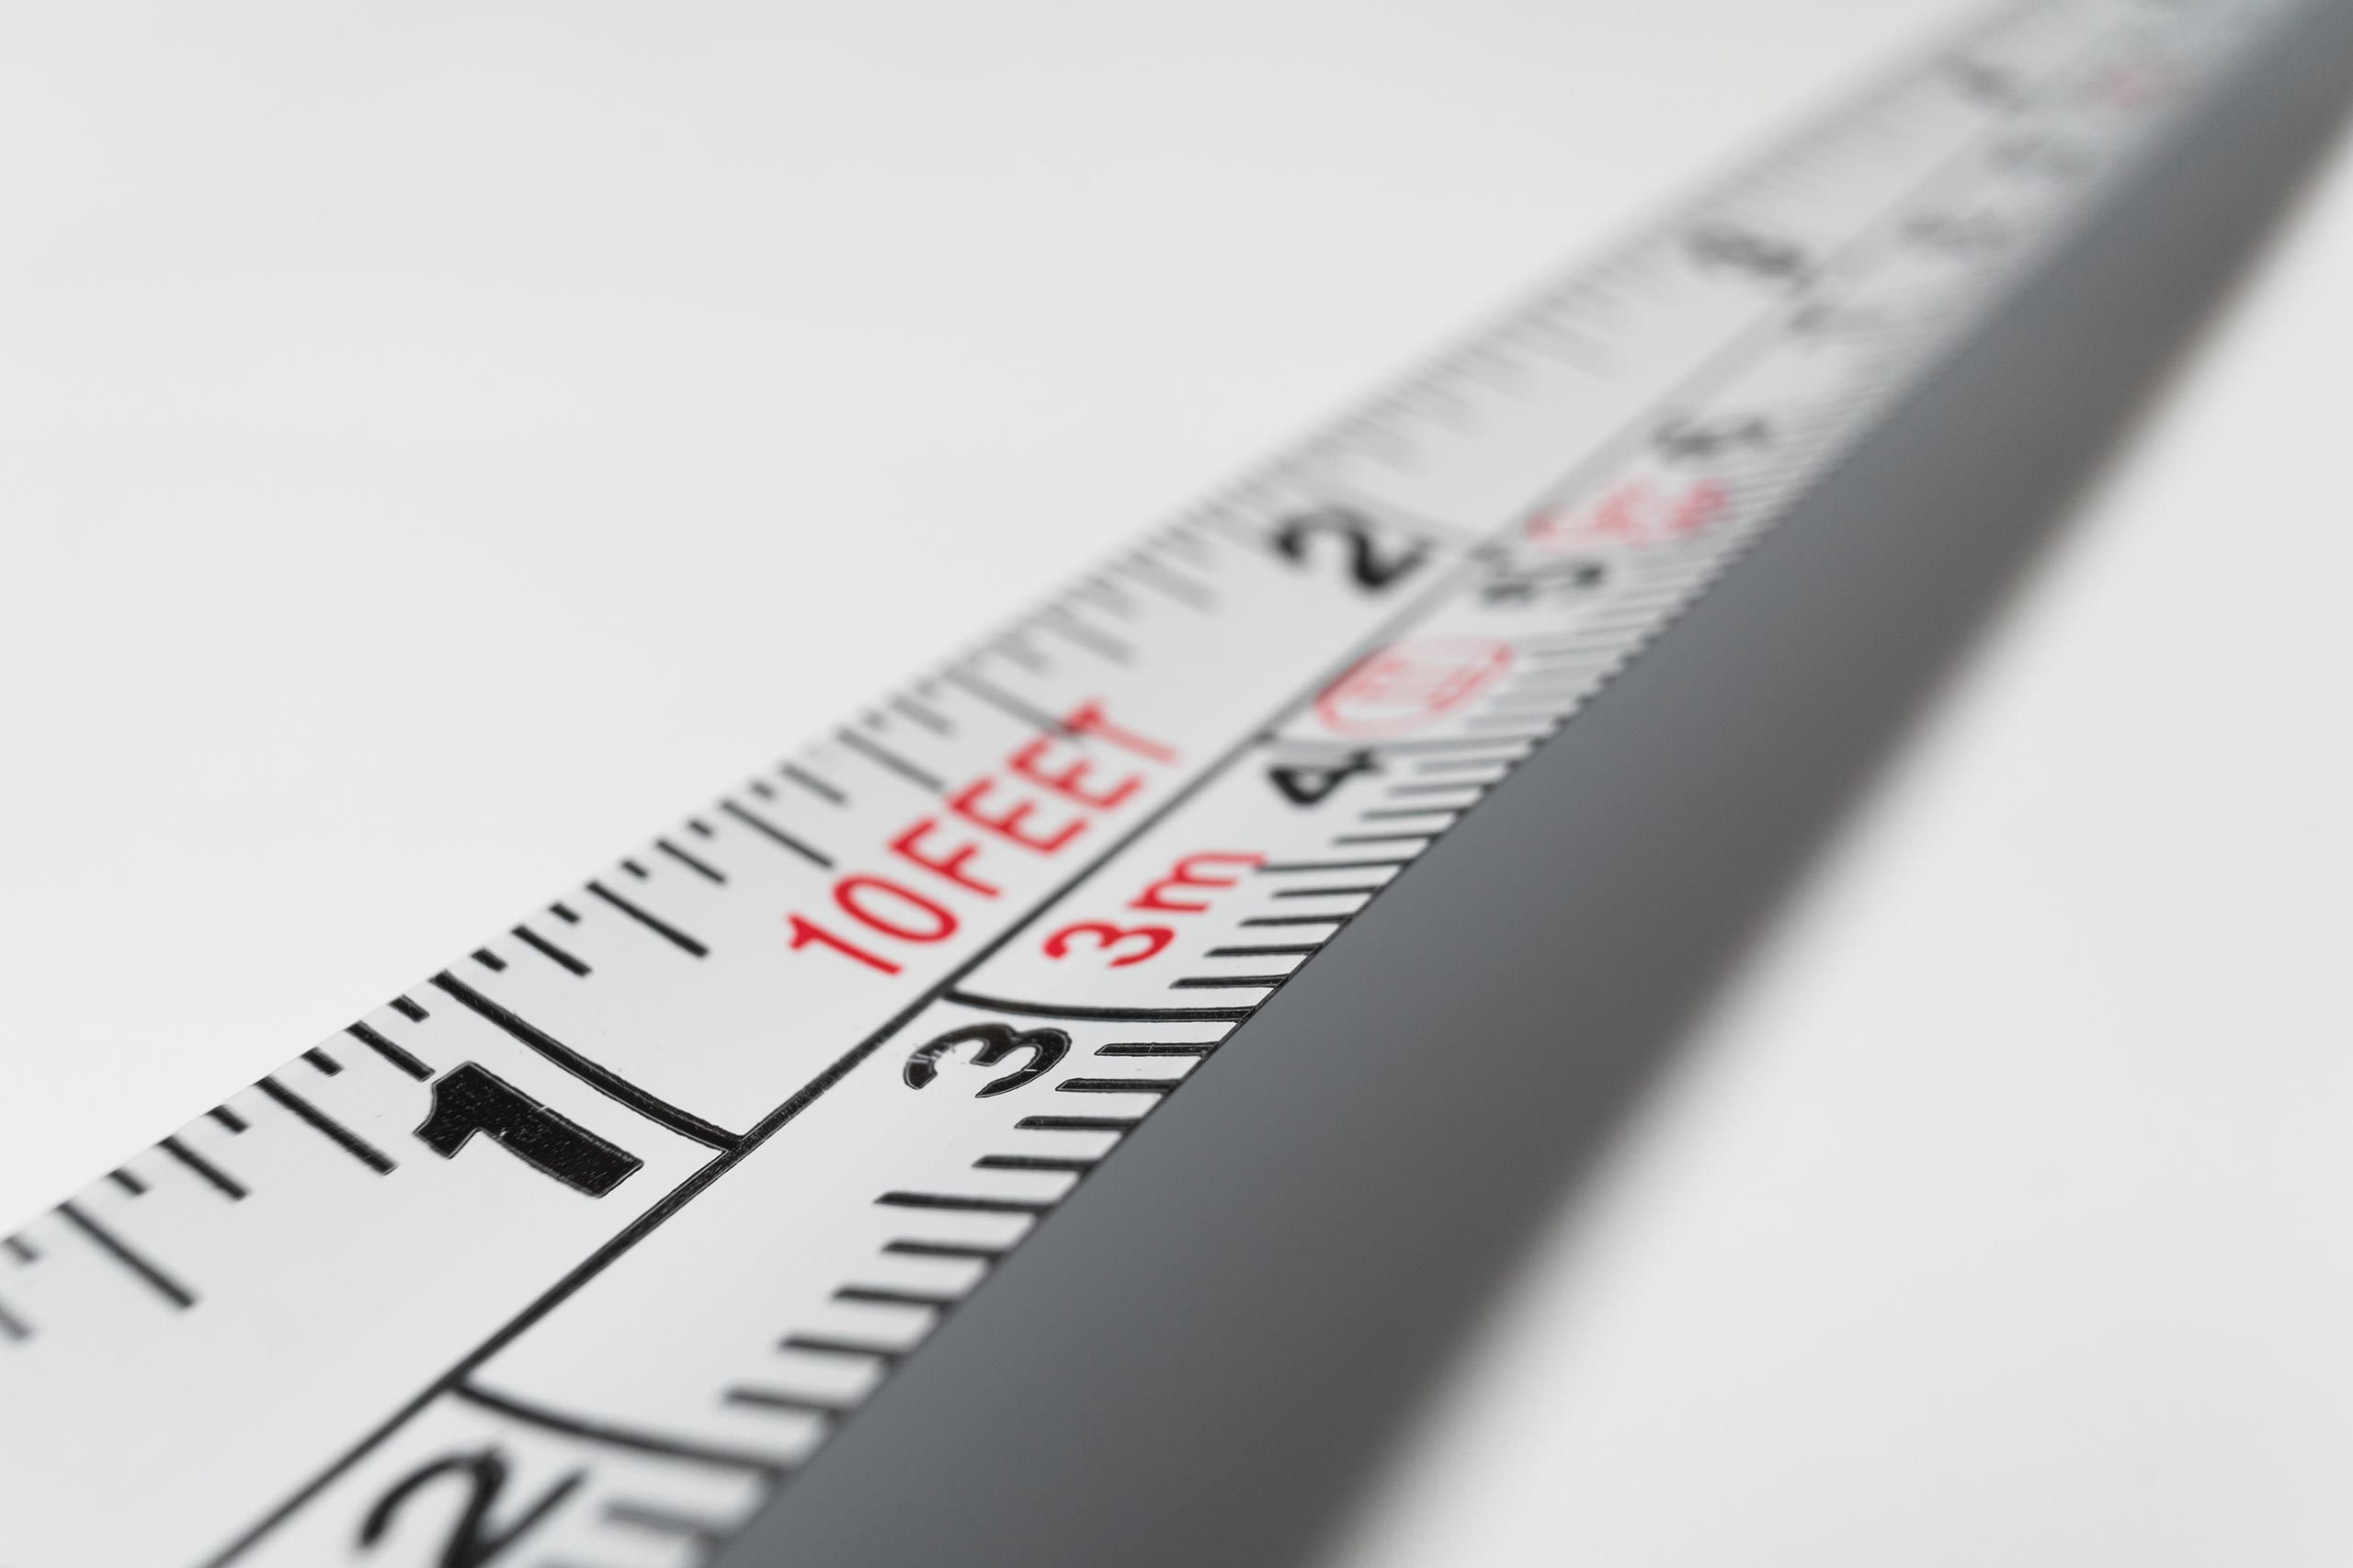 Metres or feet why construction workers around the world utilize two different units to measure length